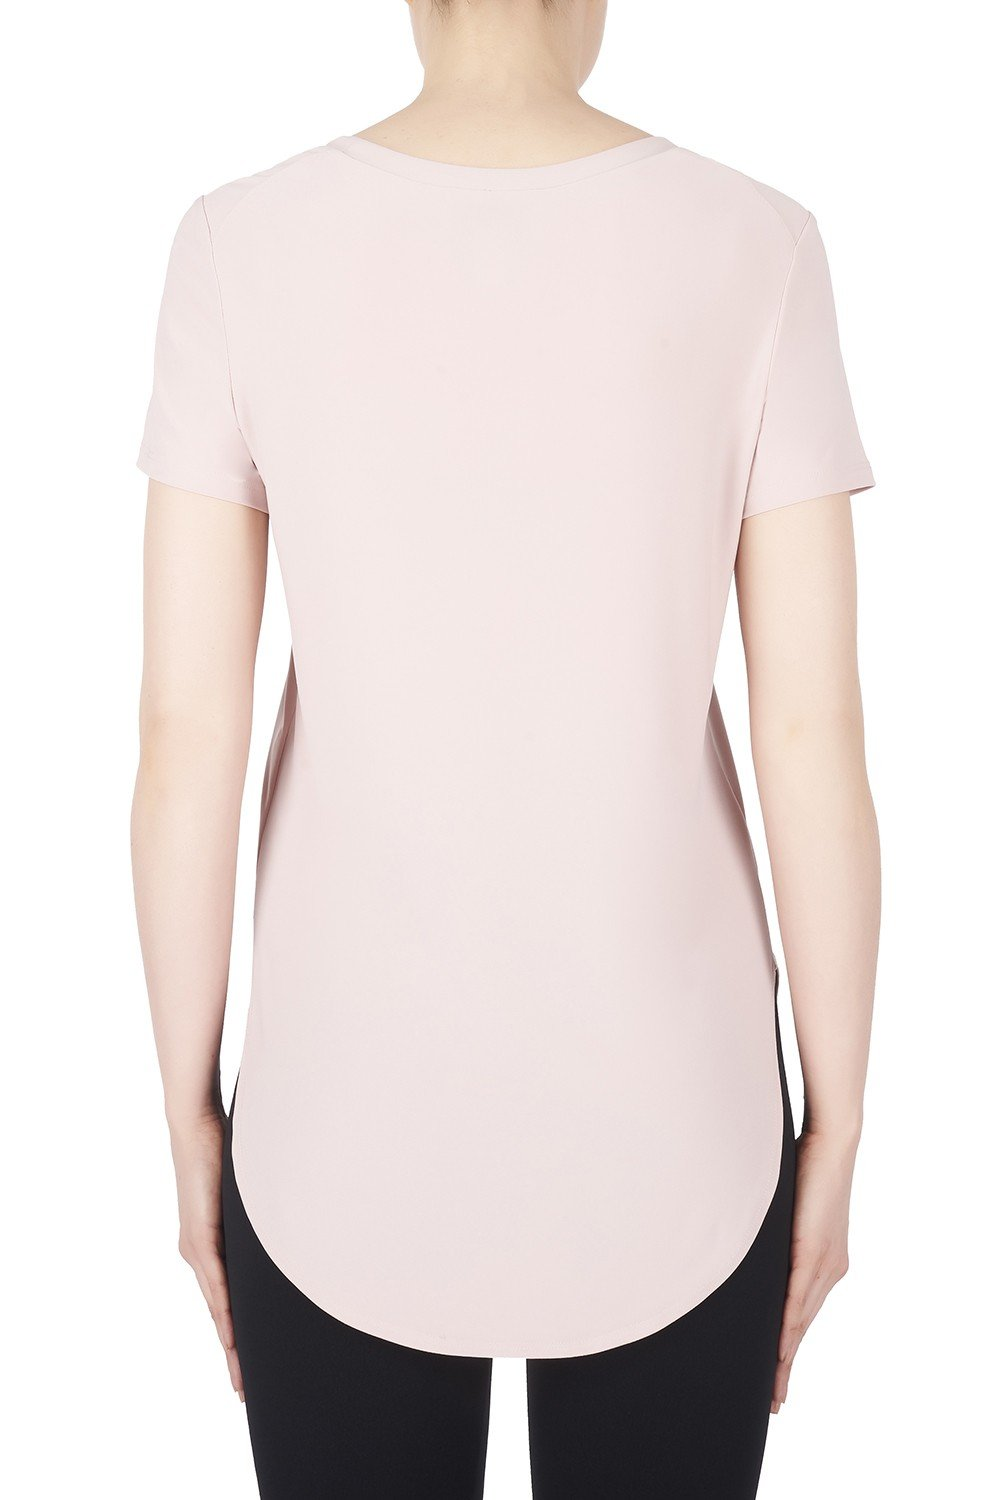 Image of Joseph Ribkoff Top Style 183220 Winter Blush Pink Best Price On Sale